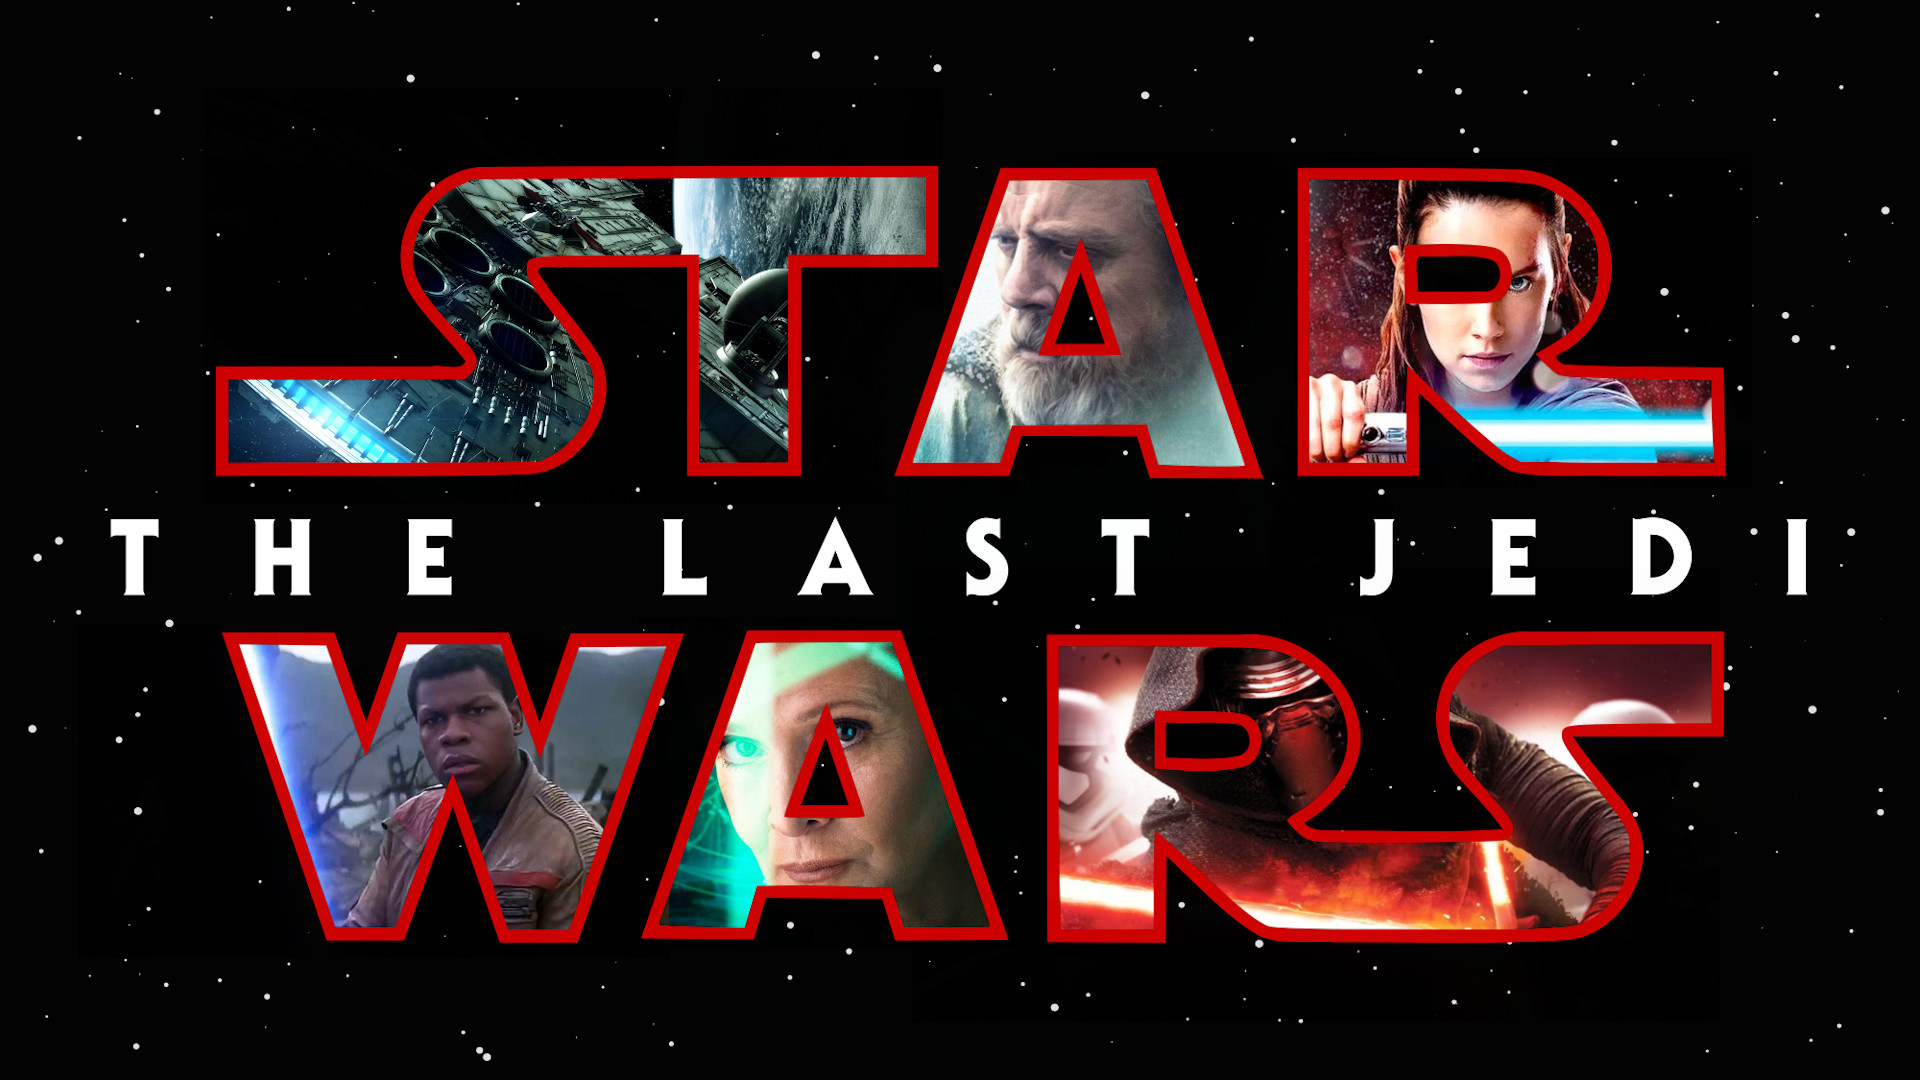 1920x1080 Movie - Star Wars Episode VIII: The Last Jedi Star Wars Wallpaper